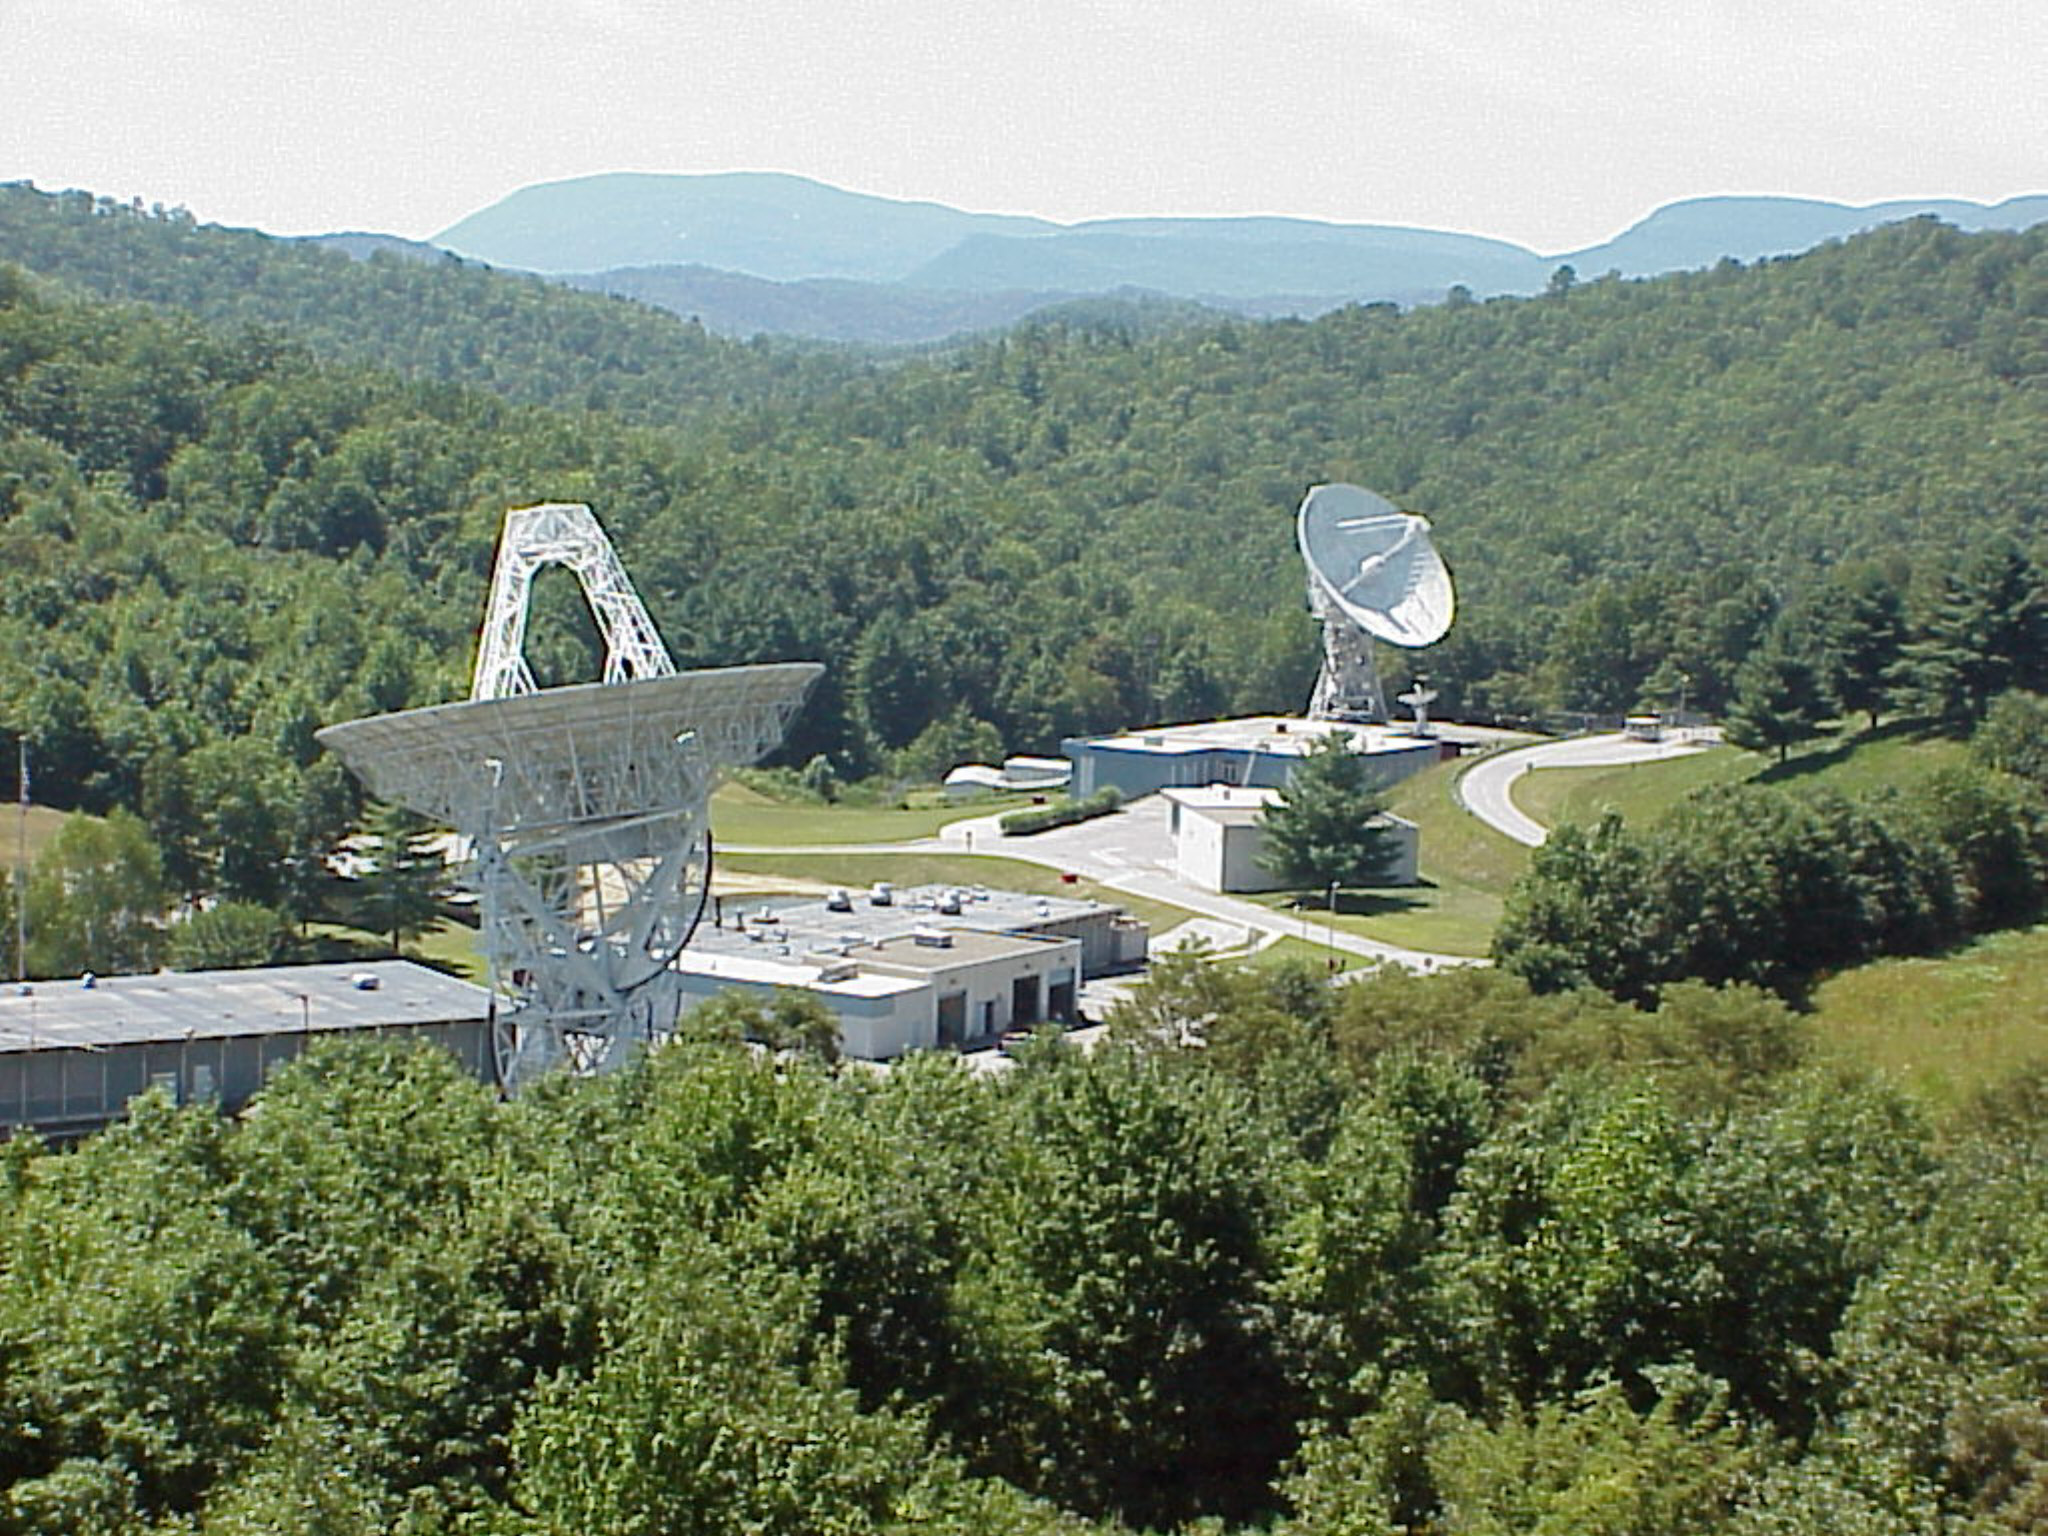 Sheltered by theAppalachian Mountains, the Pisgah Astronomical Research Institute uses its 25-meter radio telescopes for astronomy research and education outreach.  Source:  Pisgah Astronomical Research Institute